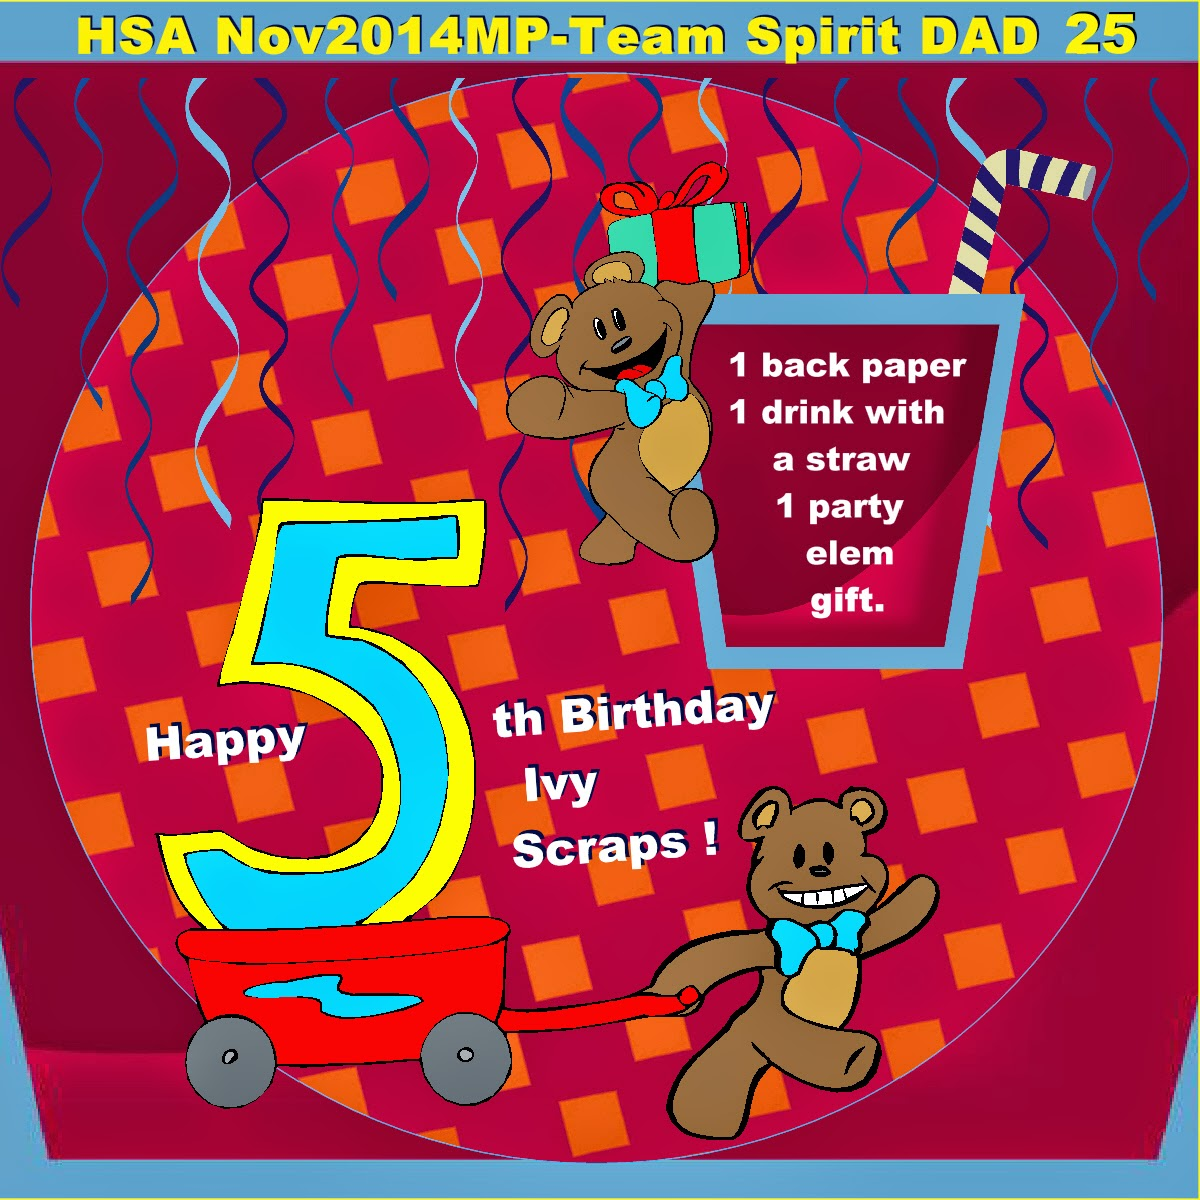 HSA Nov2014MP-Team Spirit DAD 25